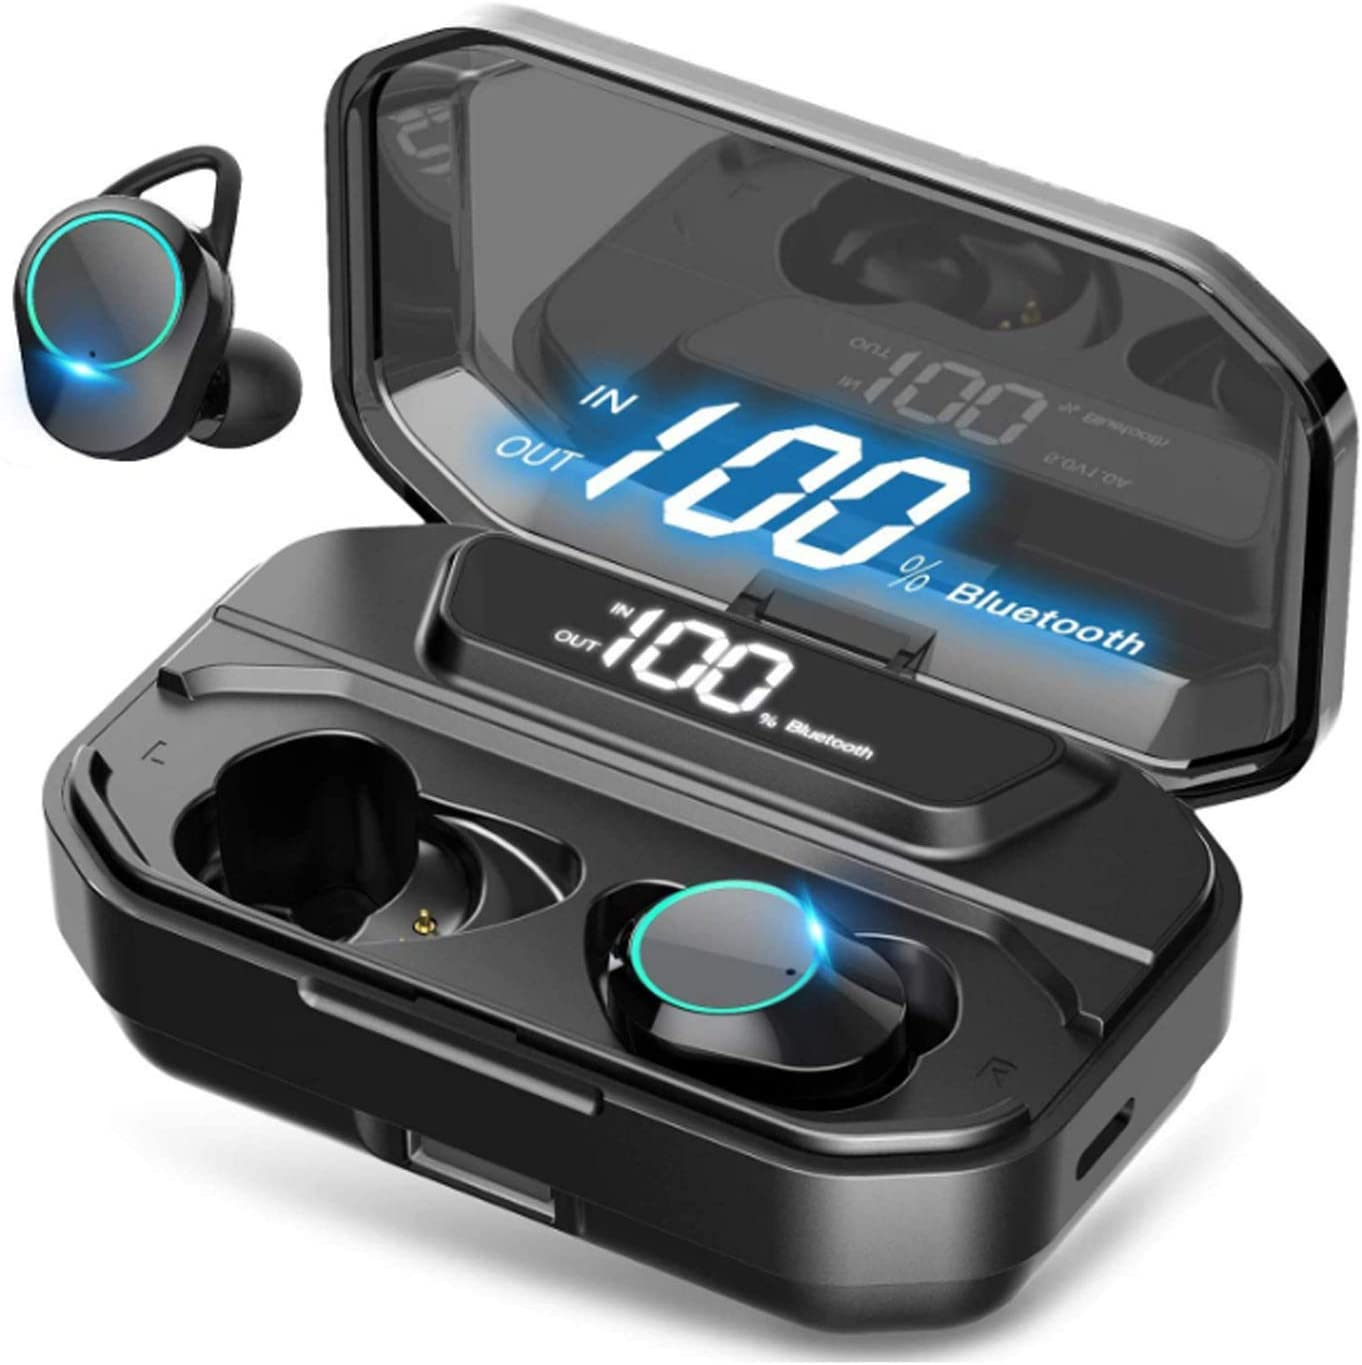 G02 Wireless Earbuds Bluetooth 5.0 in-Ear Headphones IPX6 Waterproof TWS Stereo Headphones with Built-in Microphone 3300 mAh Portable Charging Case